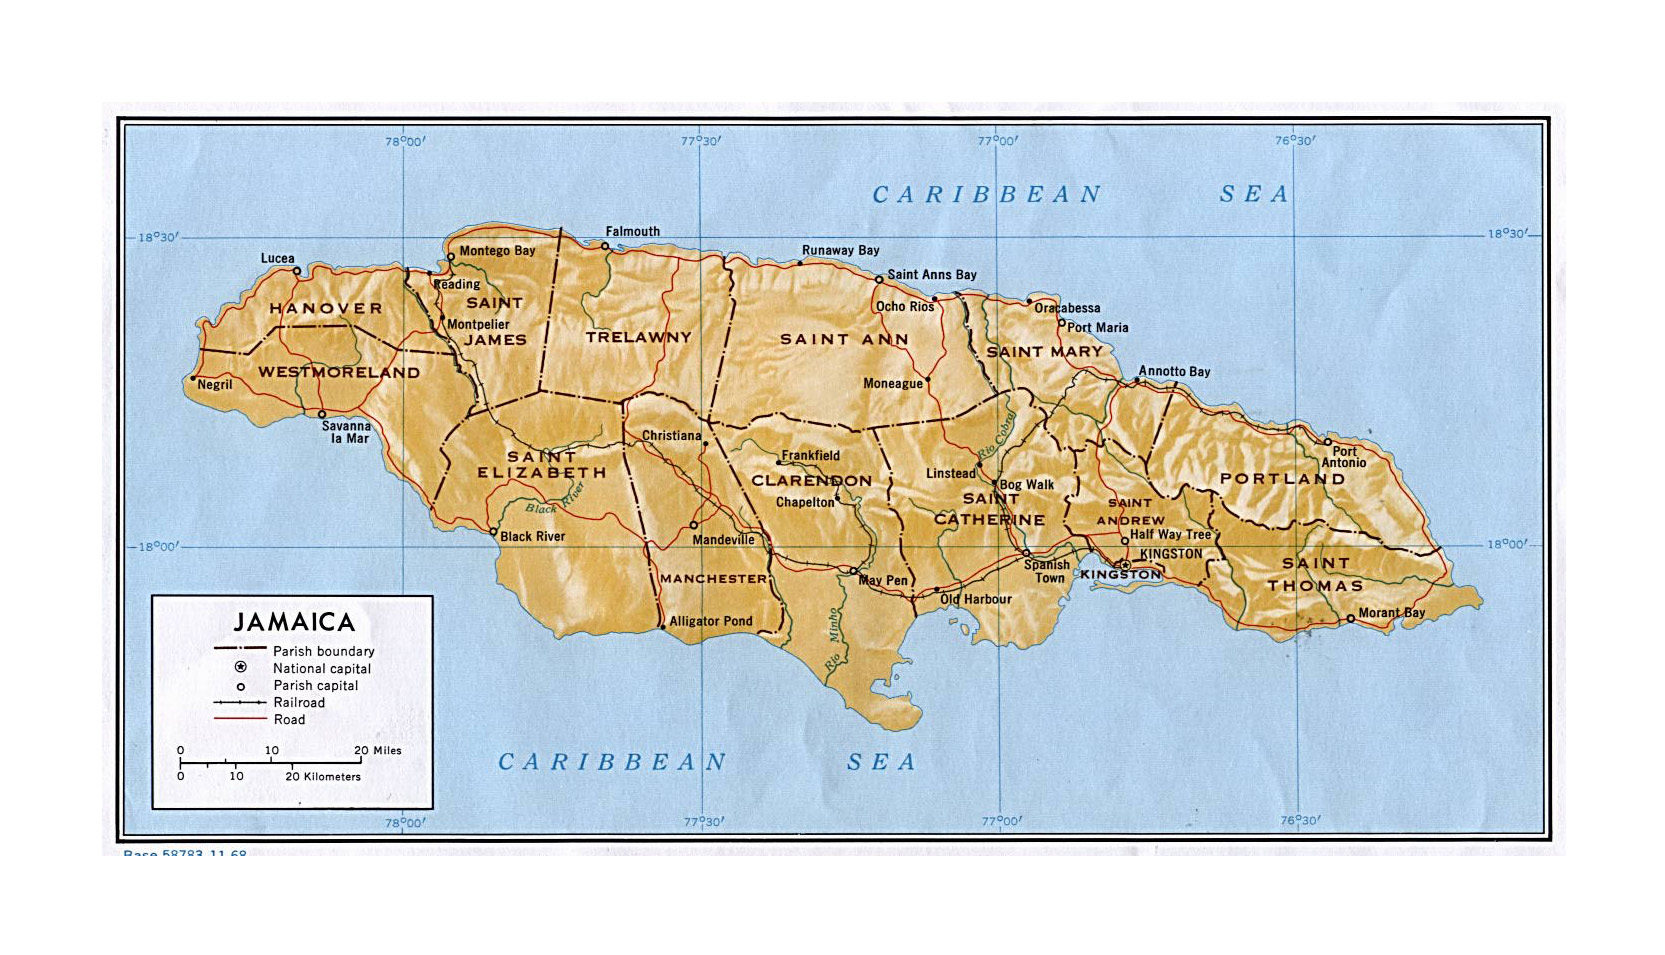 Large political and administrative map of Jamaica with relief roads